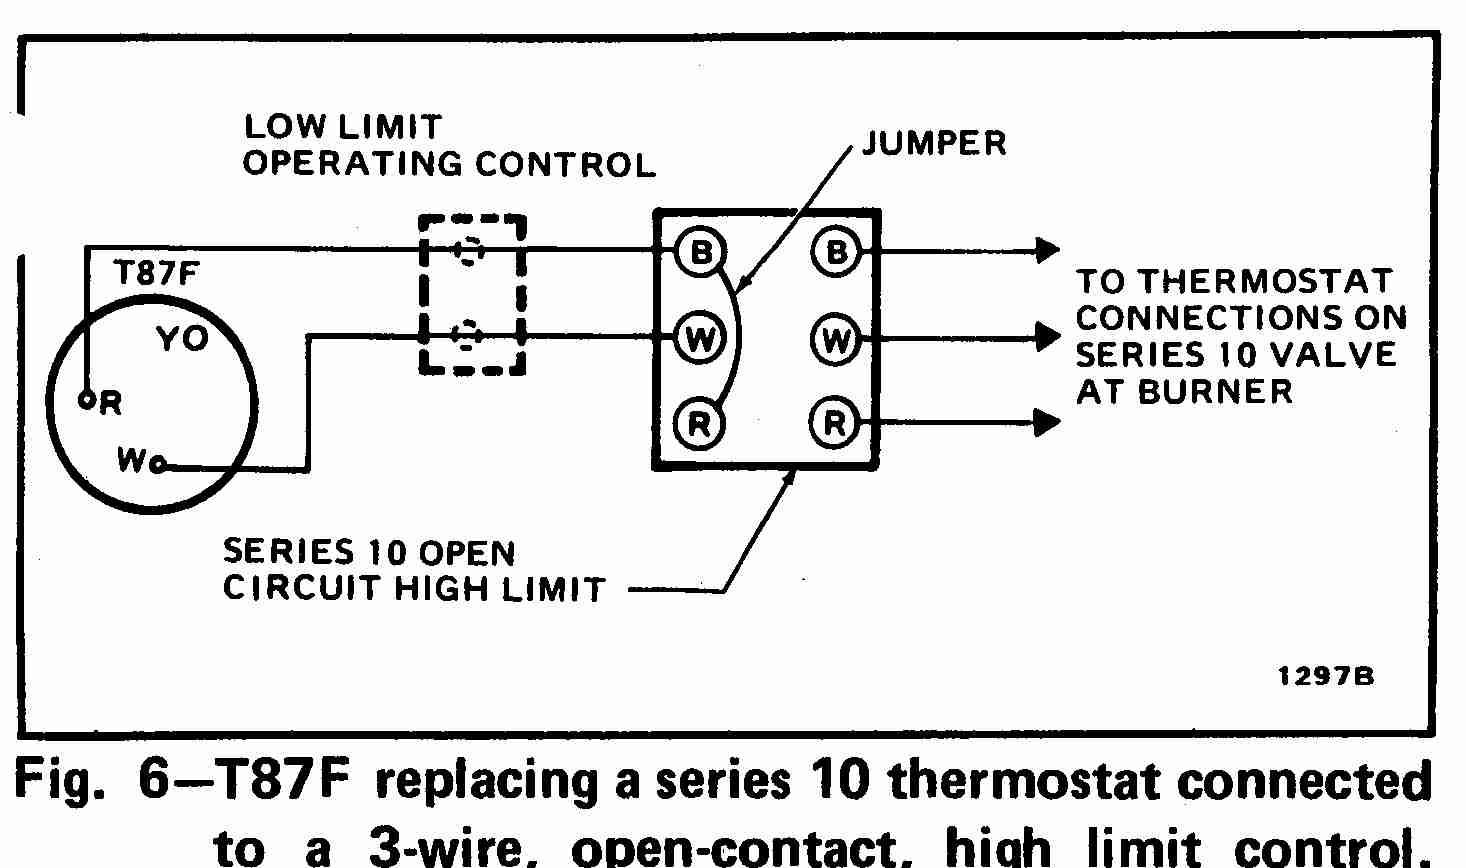 Oil Heat Wiring Diagram - Home Wiring Diagrams  Phase Water Heater Thermostat Wiring Diagram Free Picture on